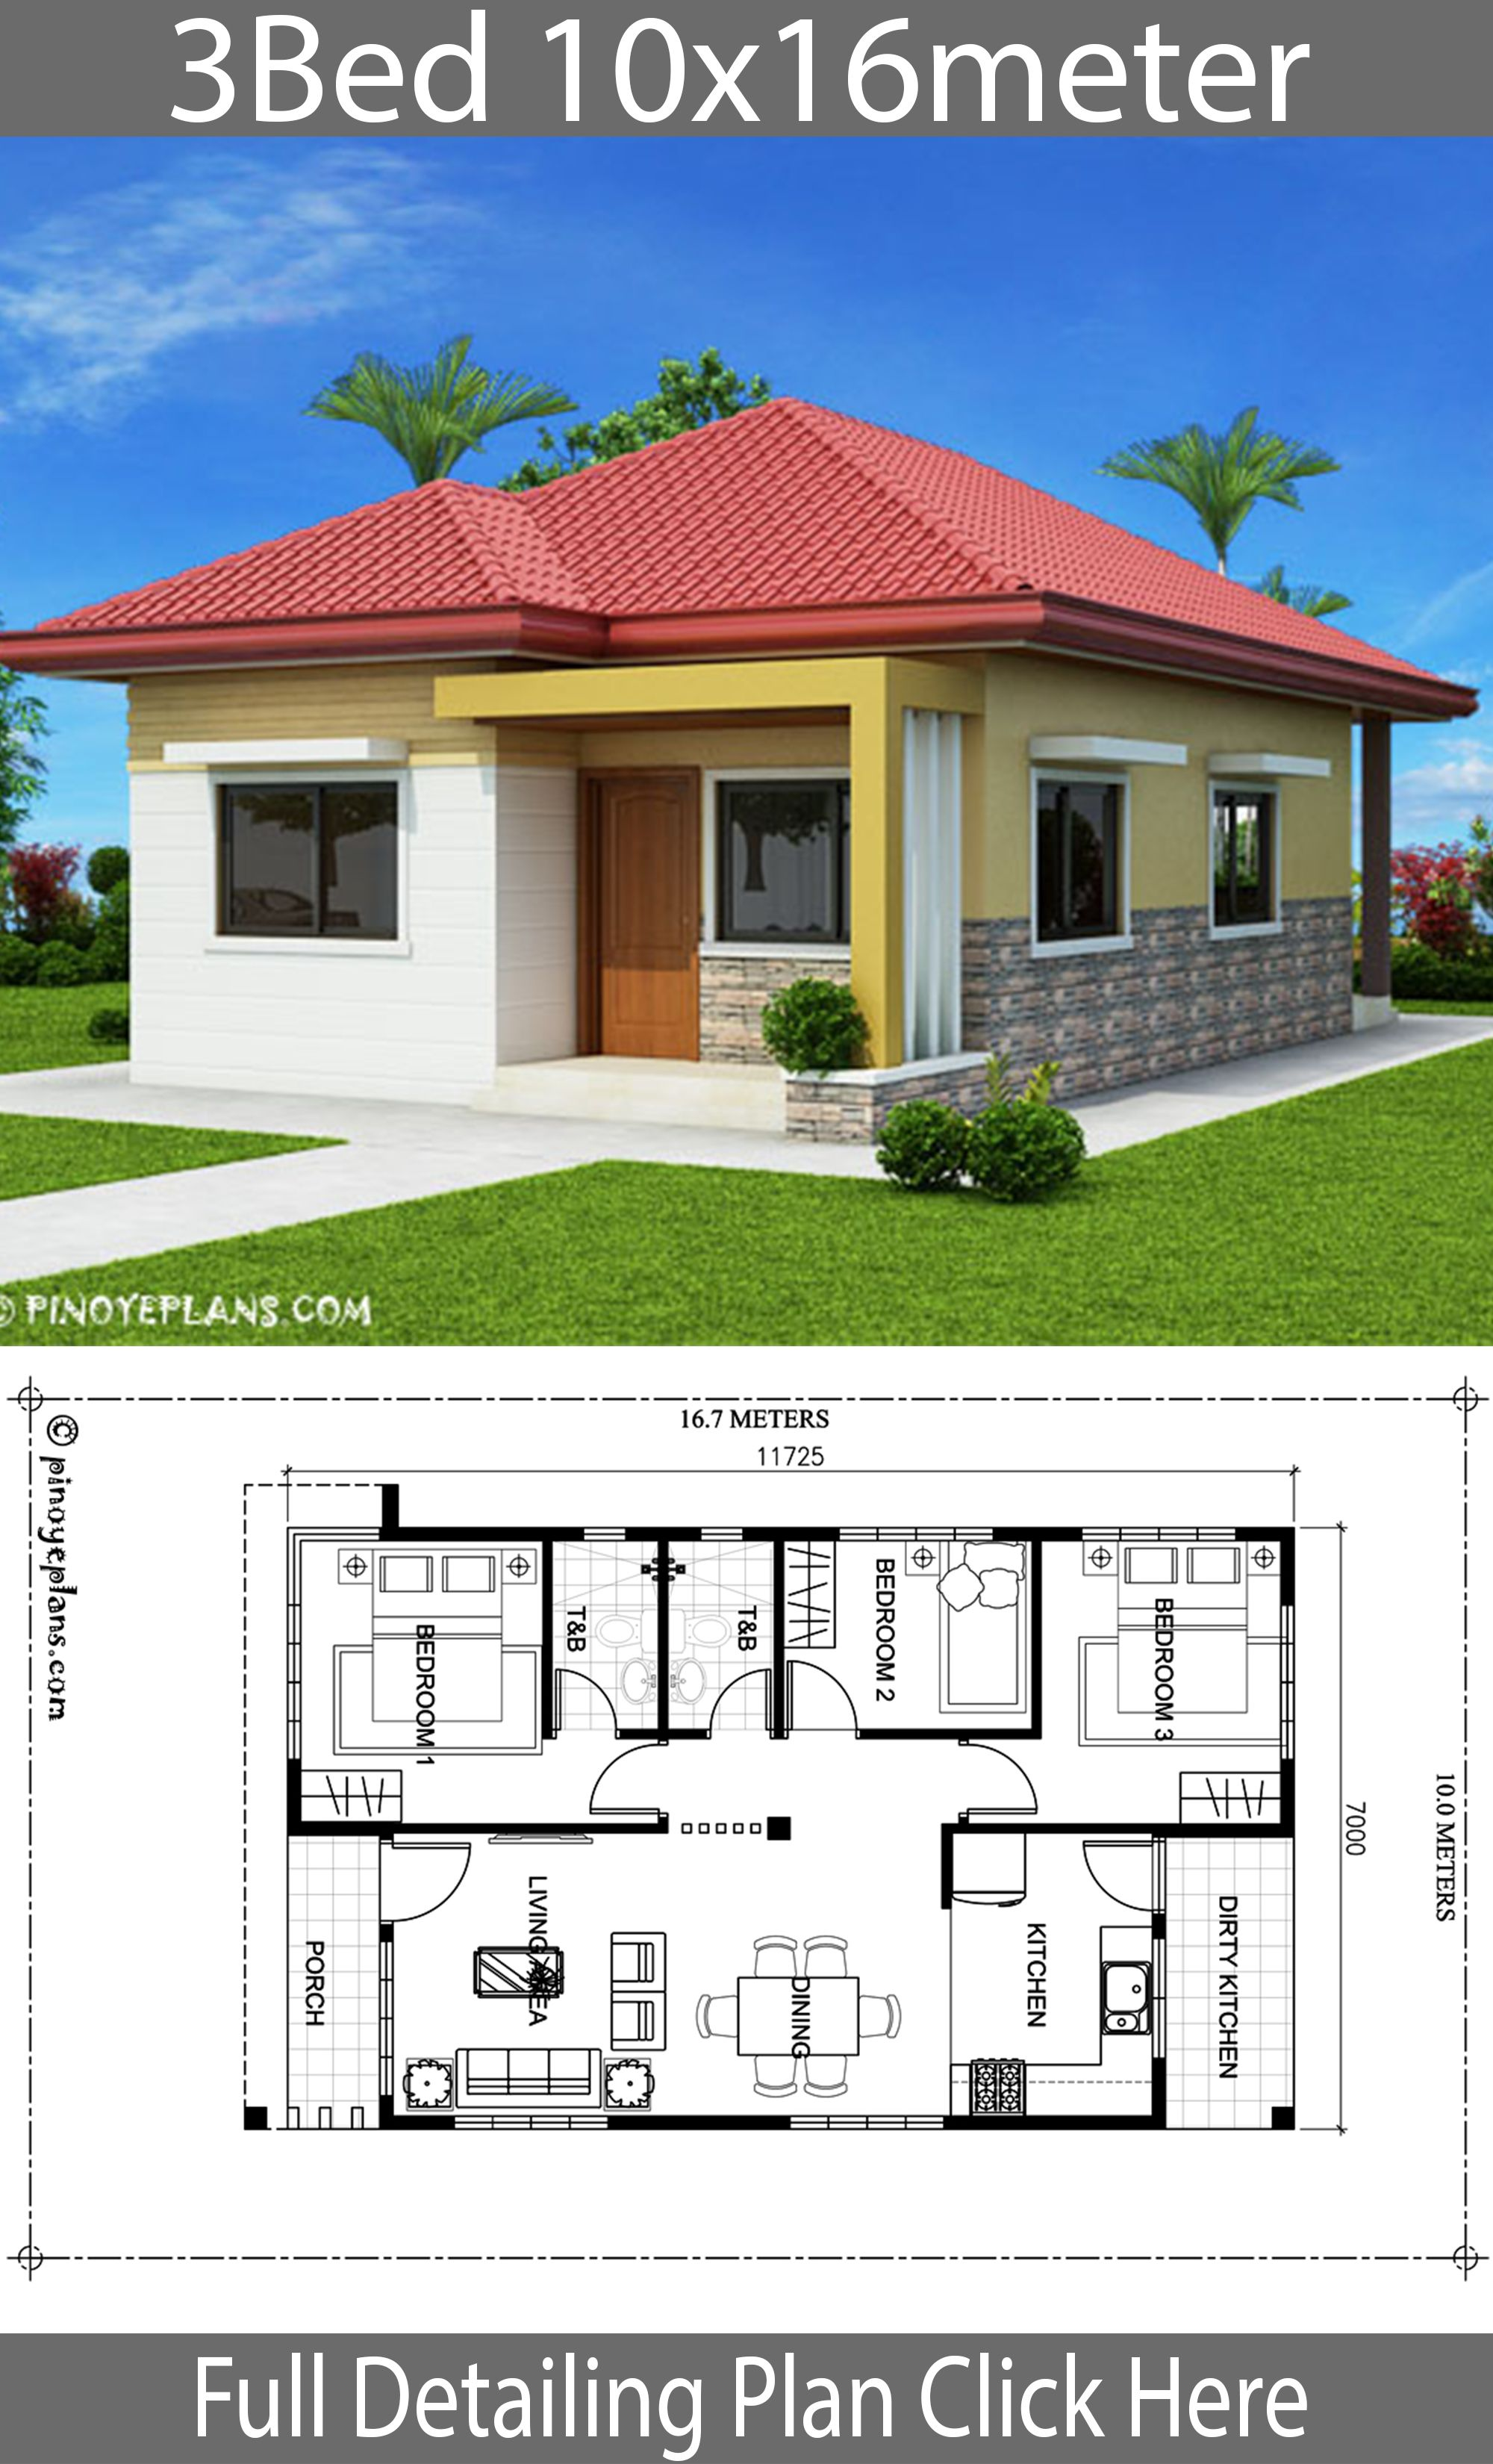 Home Design 10x16m With 3 Bedrooms House Plan Map House Plan Gallery Affordable House Plans My House Plans